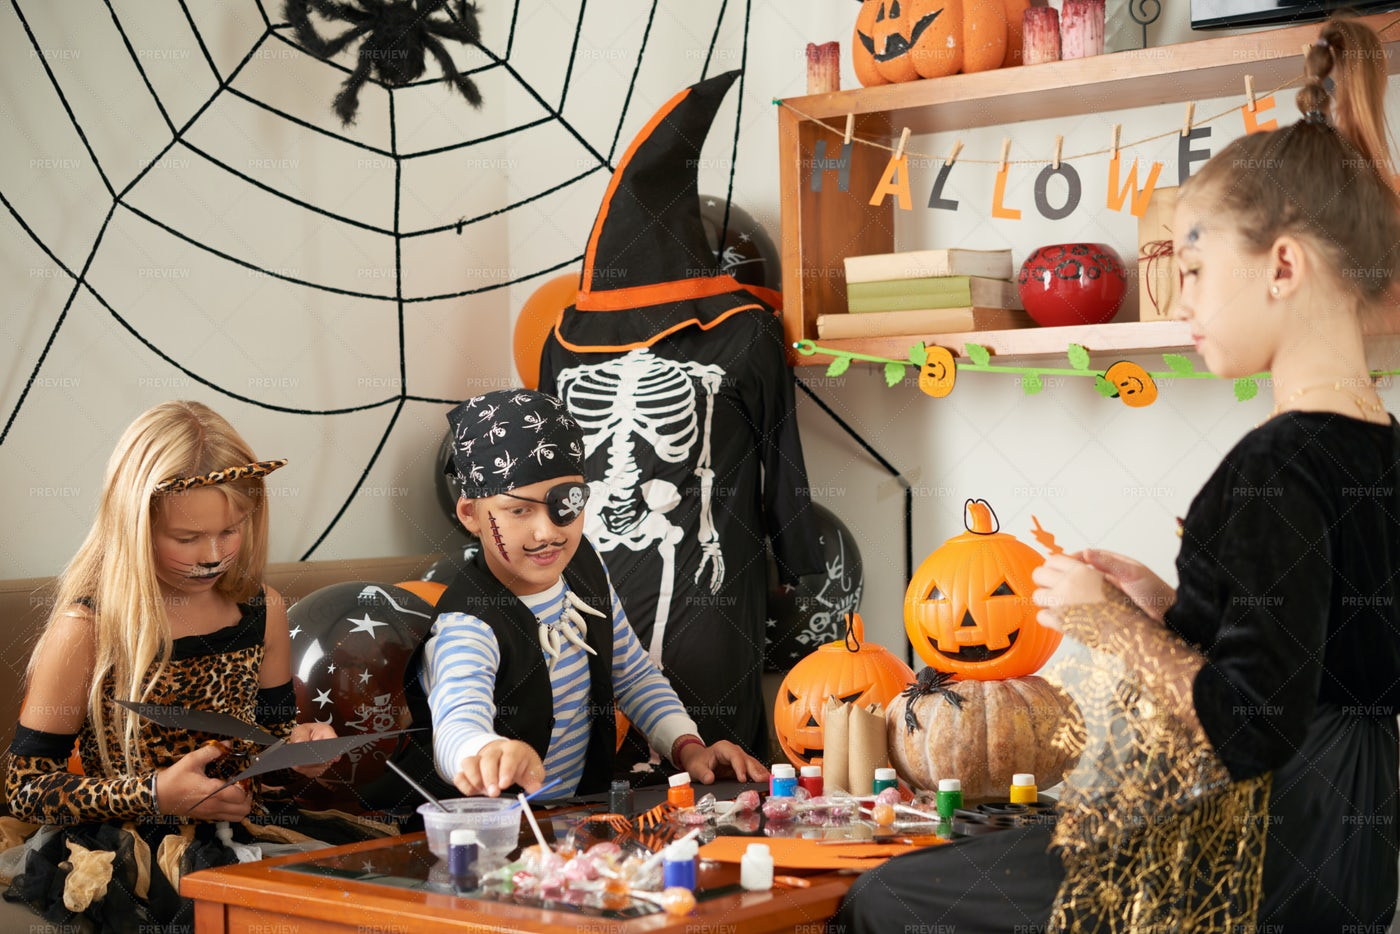 Friends Making Crafts For Halloween: Stock Photos